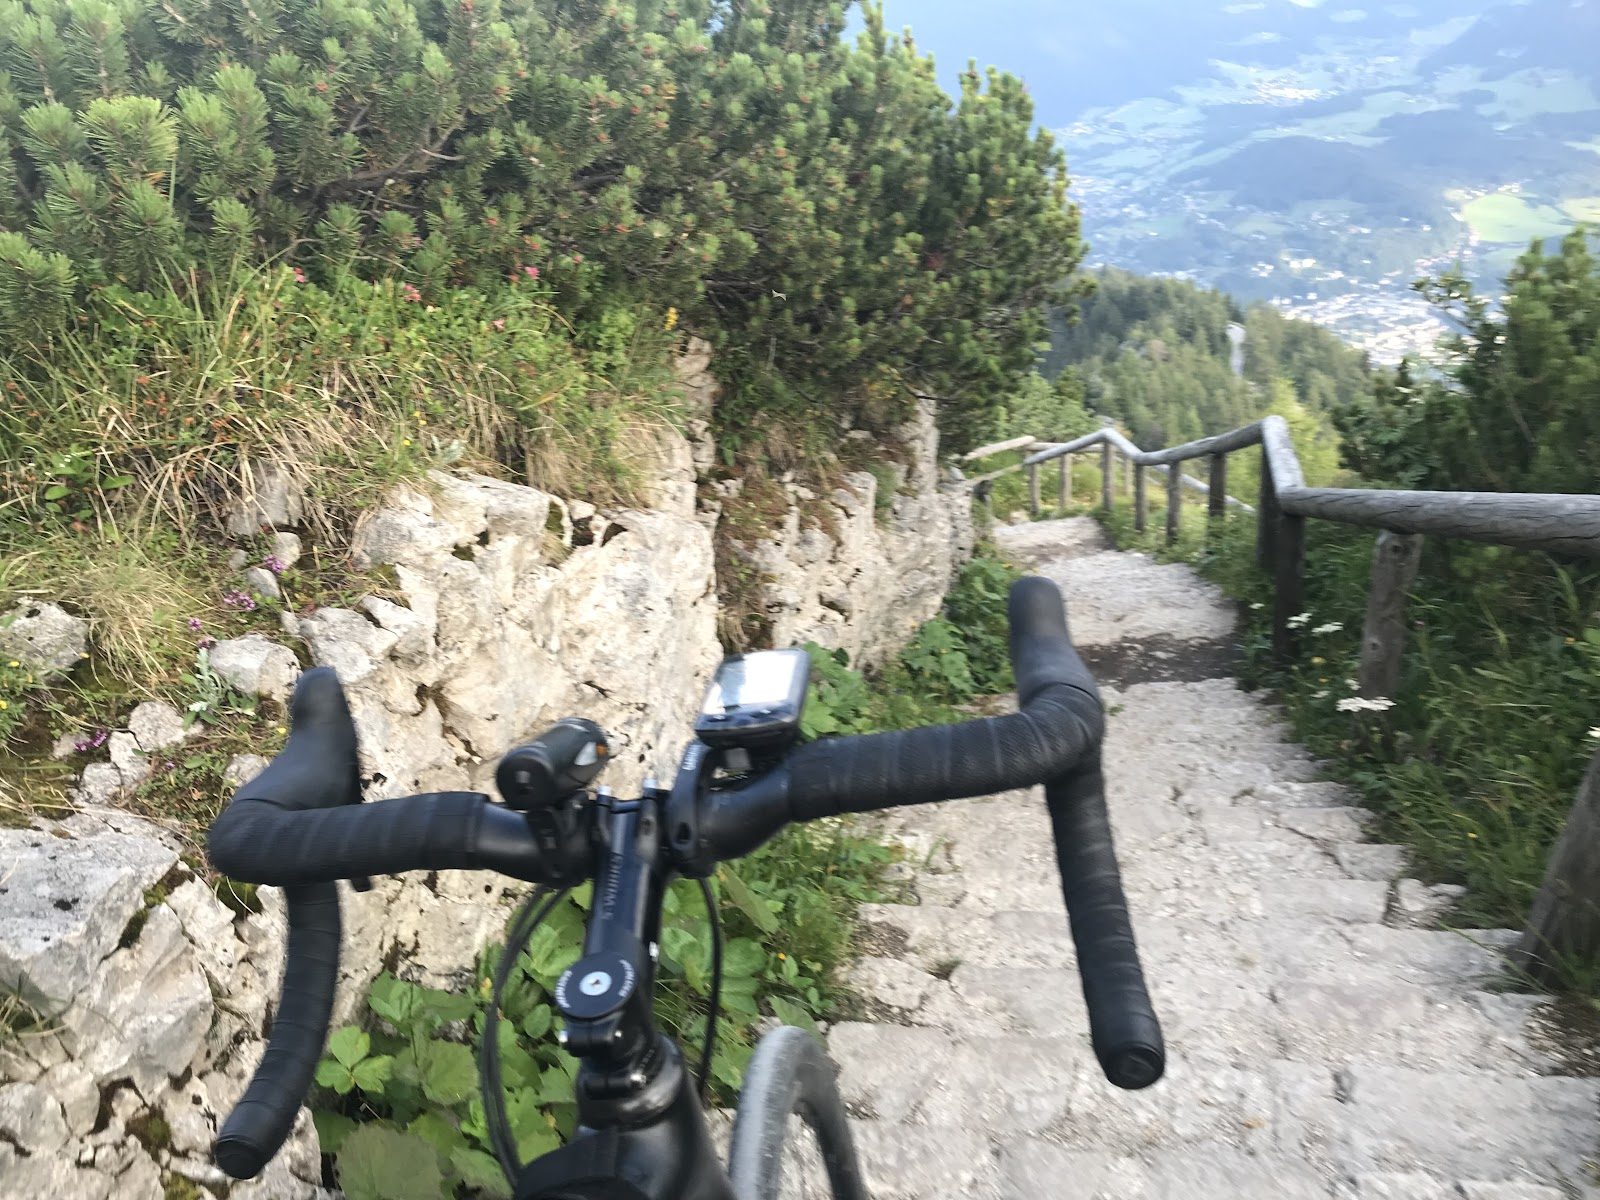 Bicycle ride to Kehlsetinhaus (Eagles Nest) walkway from bus drop to the top, bike, steps